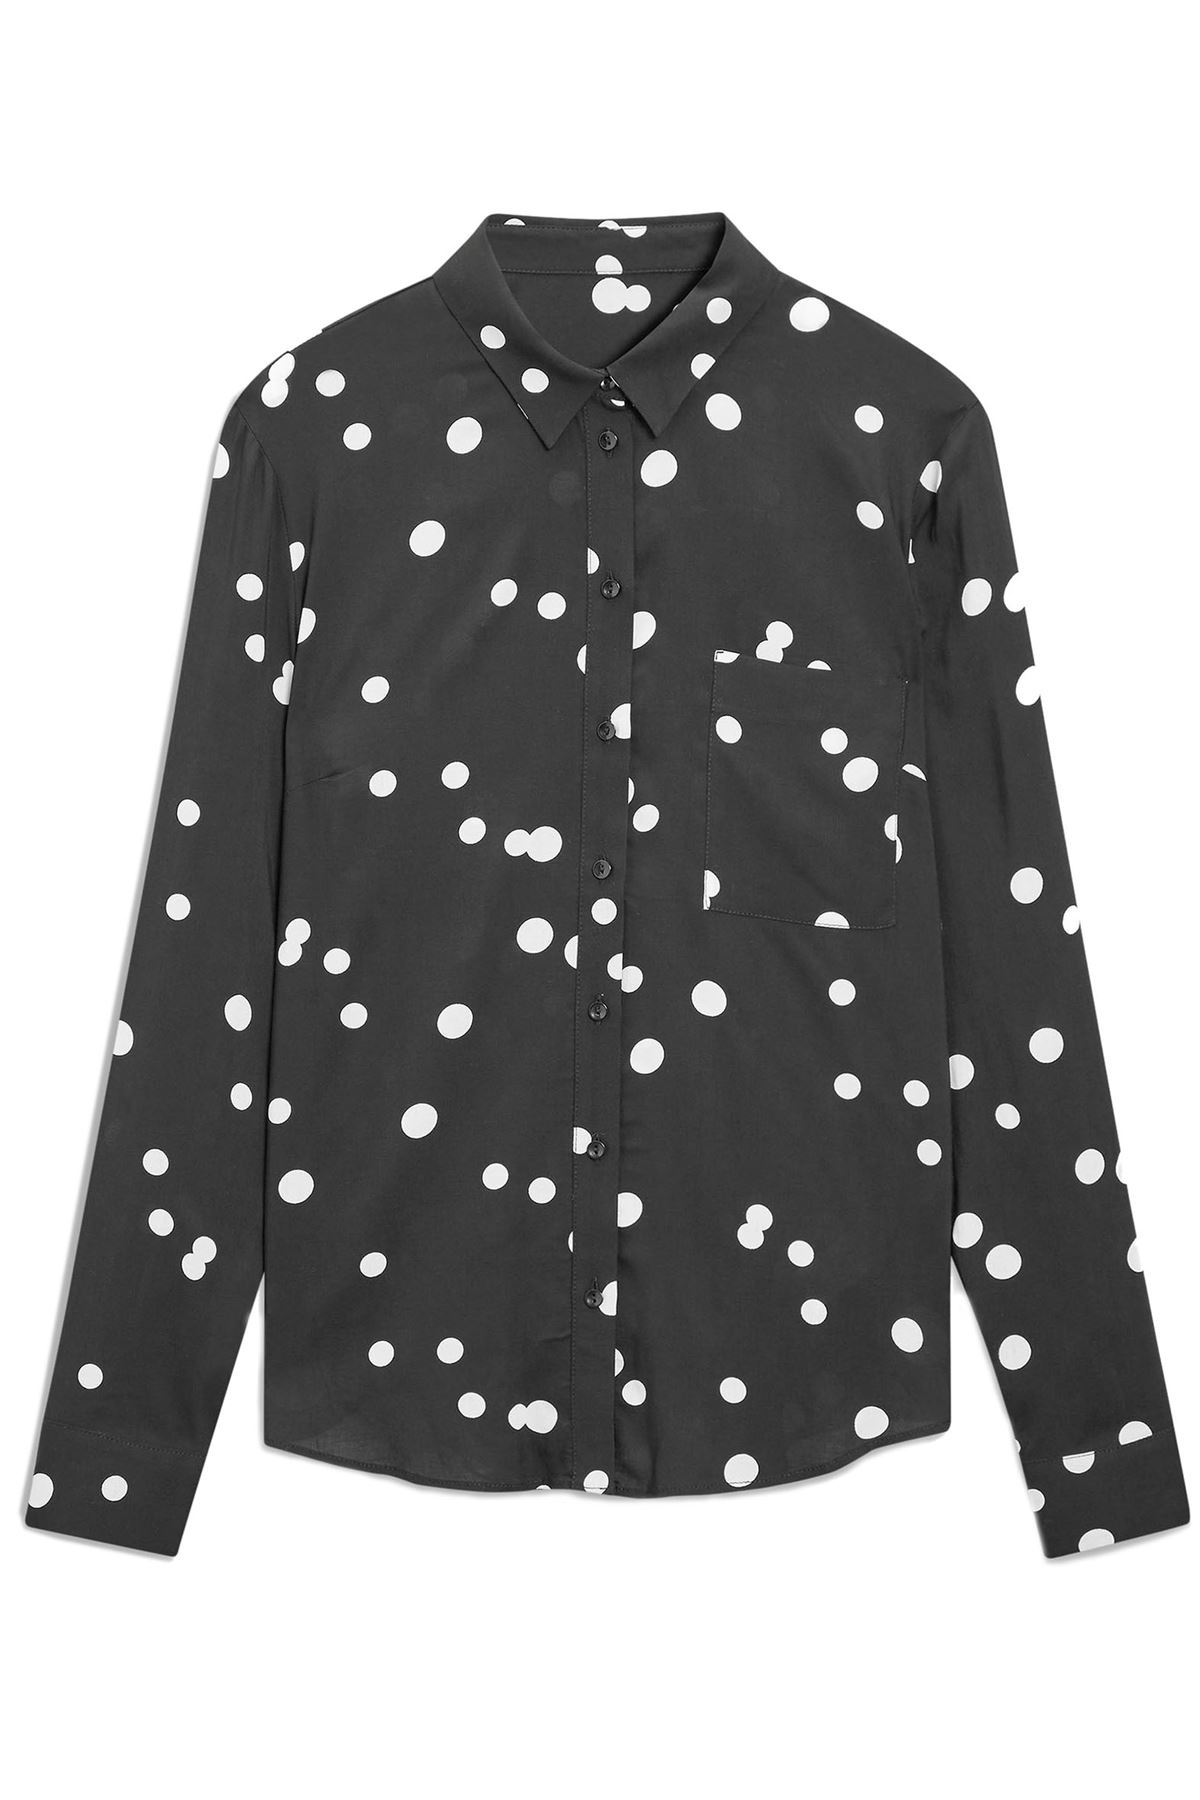 NEXT-Black-White-Spotted-Long-Sleeve-Silky-Shirt-Blouse-SALE-Was-24 thumbnail 9